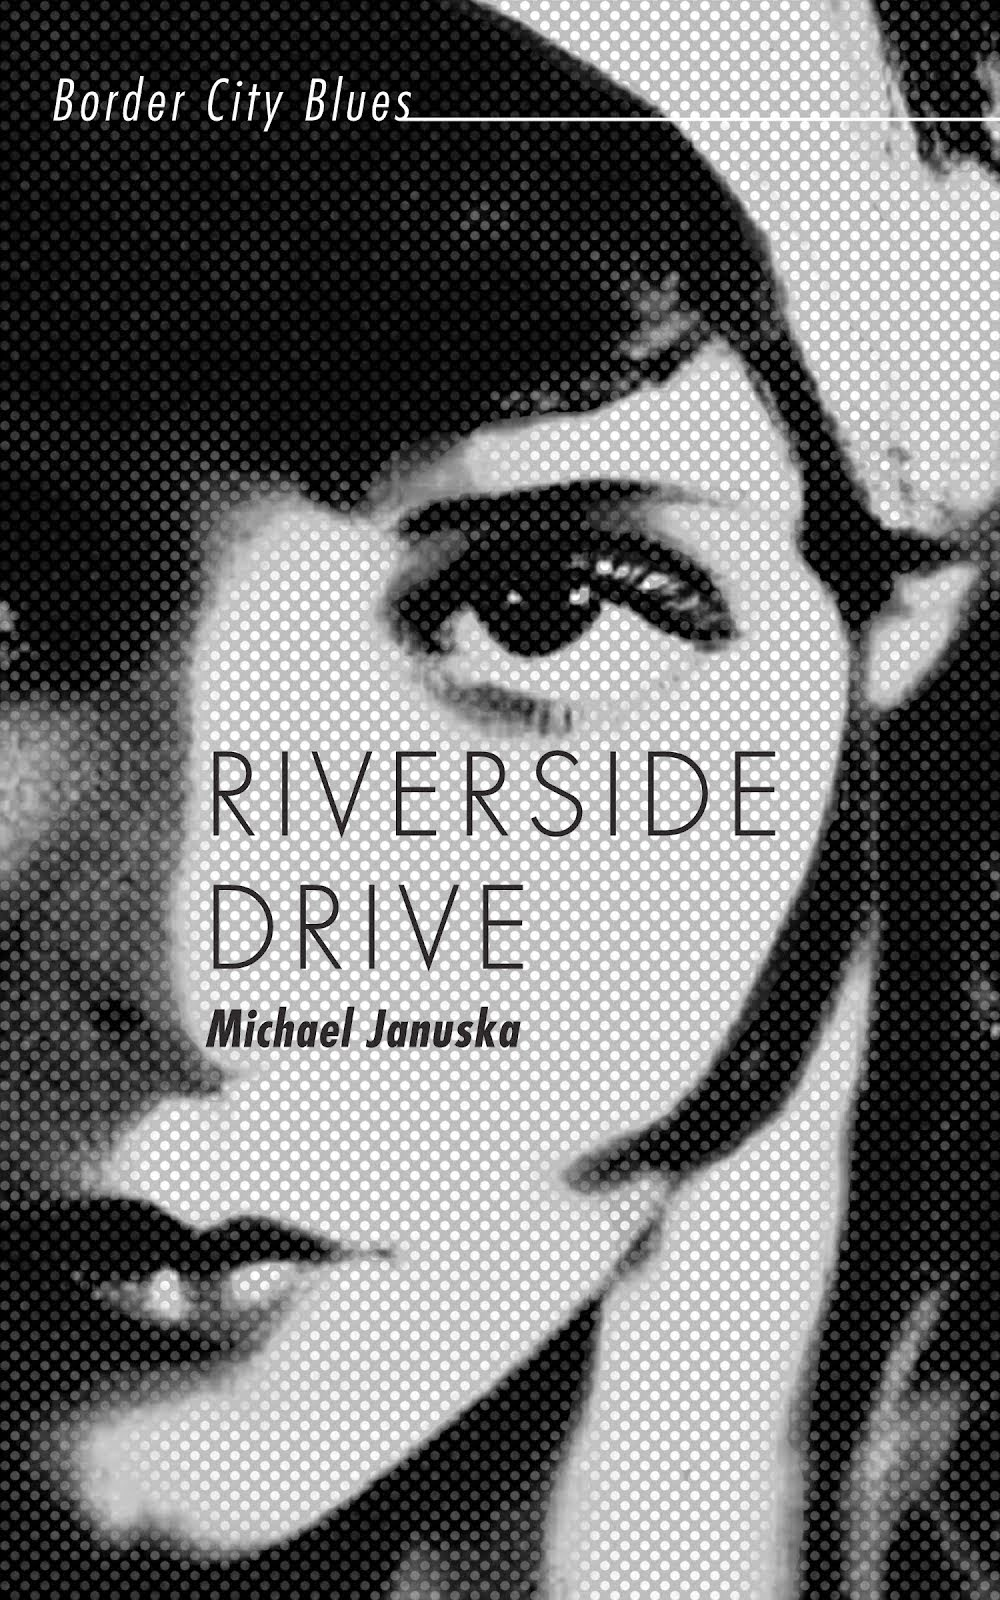 NEXT READ: RIVERSIDE DRIVE